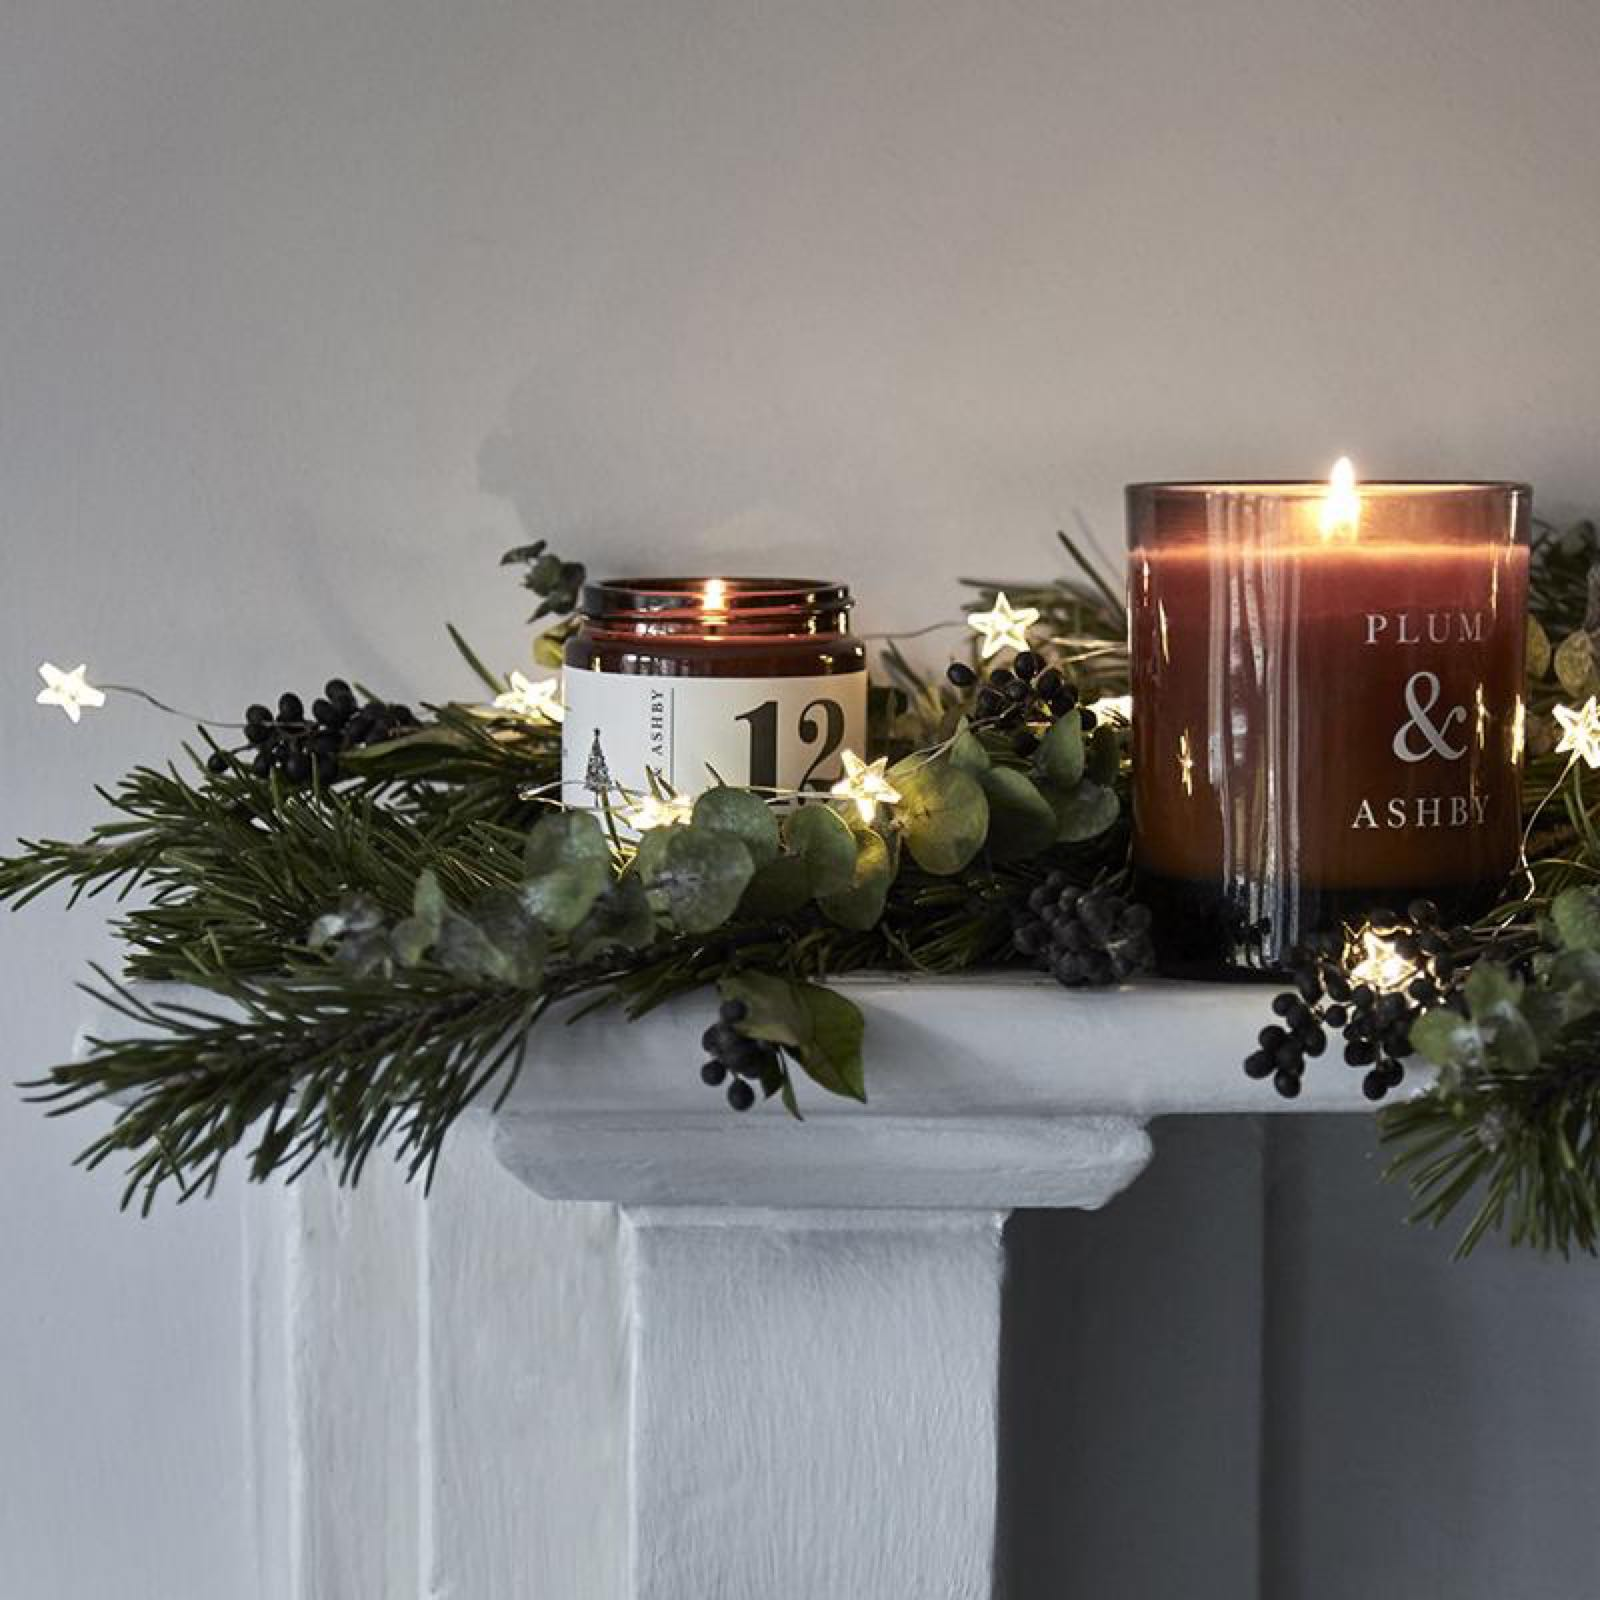 Plum & Ashby 12 Days of Orange and Nutmeg Christmas candle in a Jar  made with 100% natural plant wax 20 hours burn time, this Candle is sure to make you feel festive!